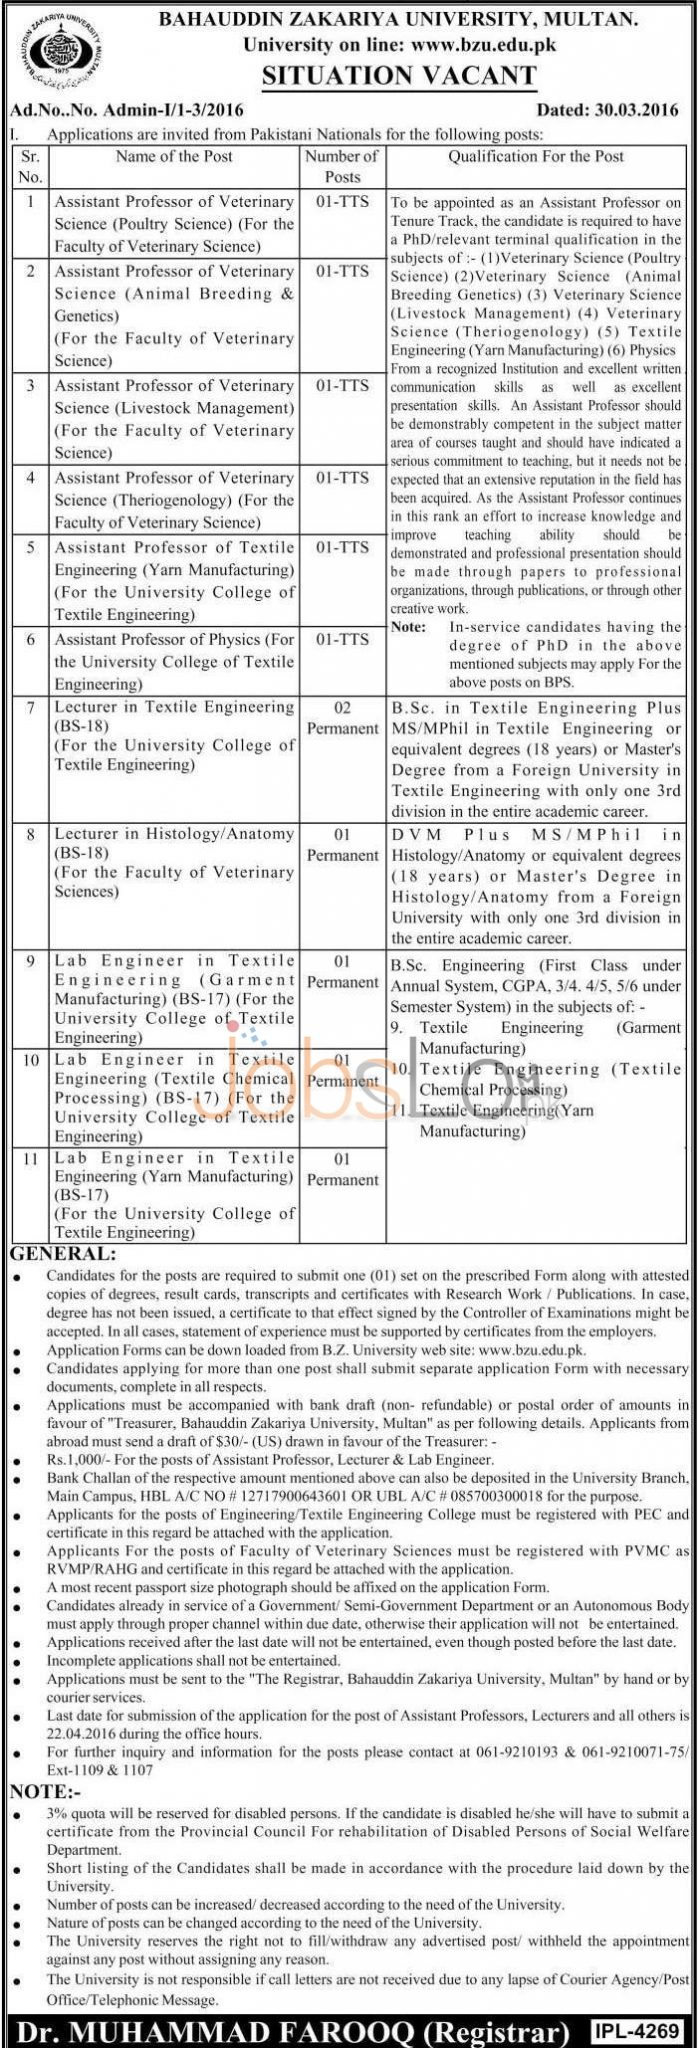 Bahauddin Zakariya University Multan Jobs